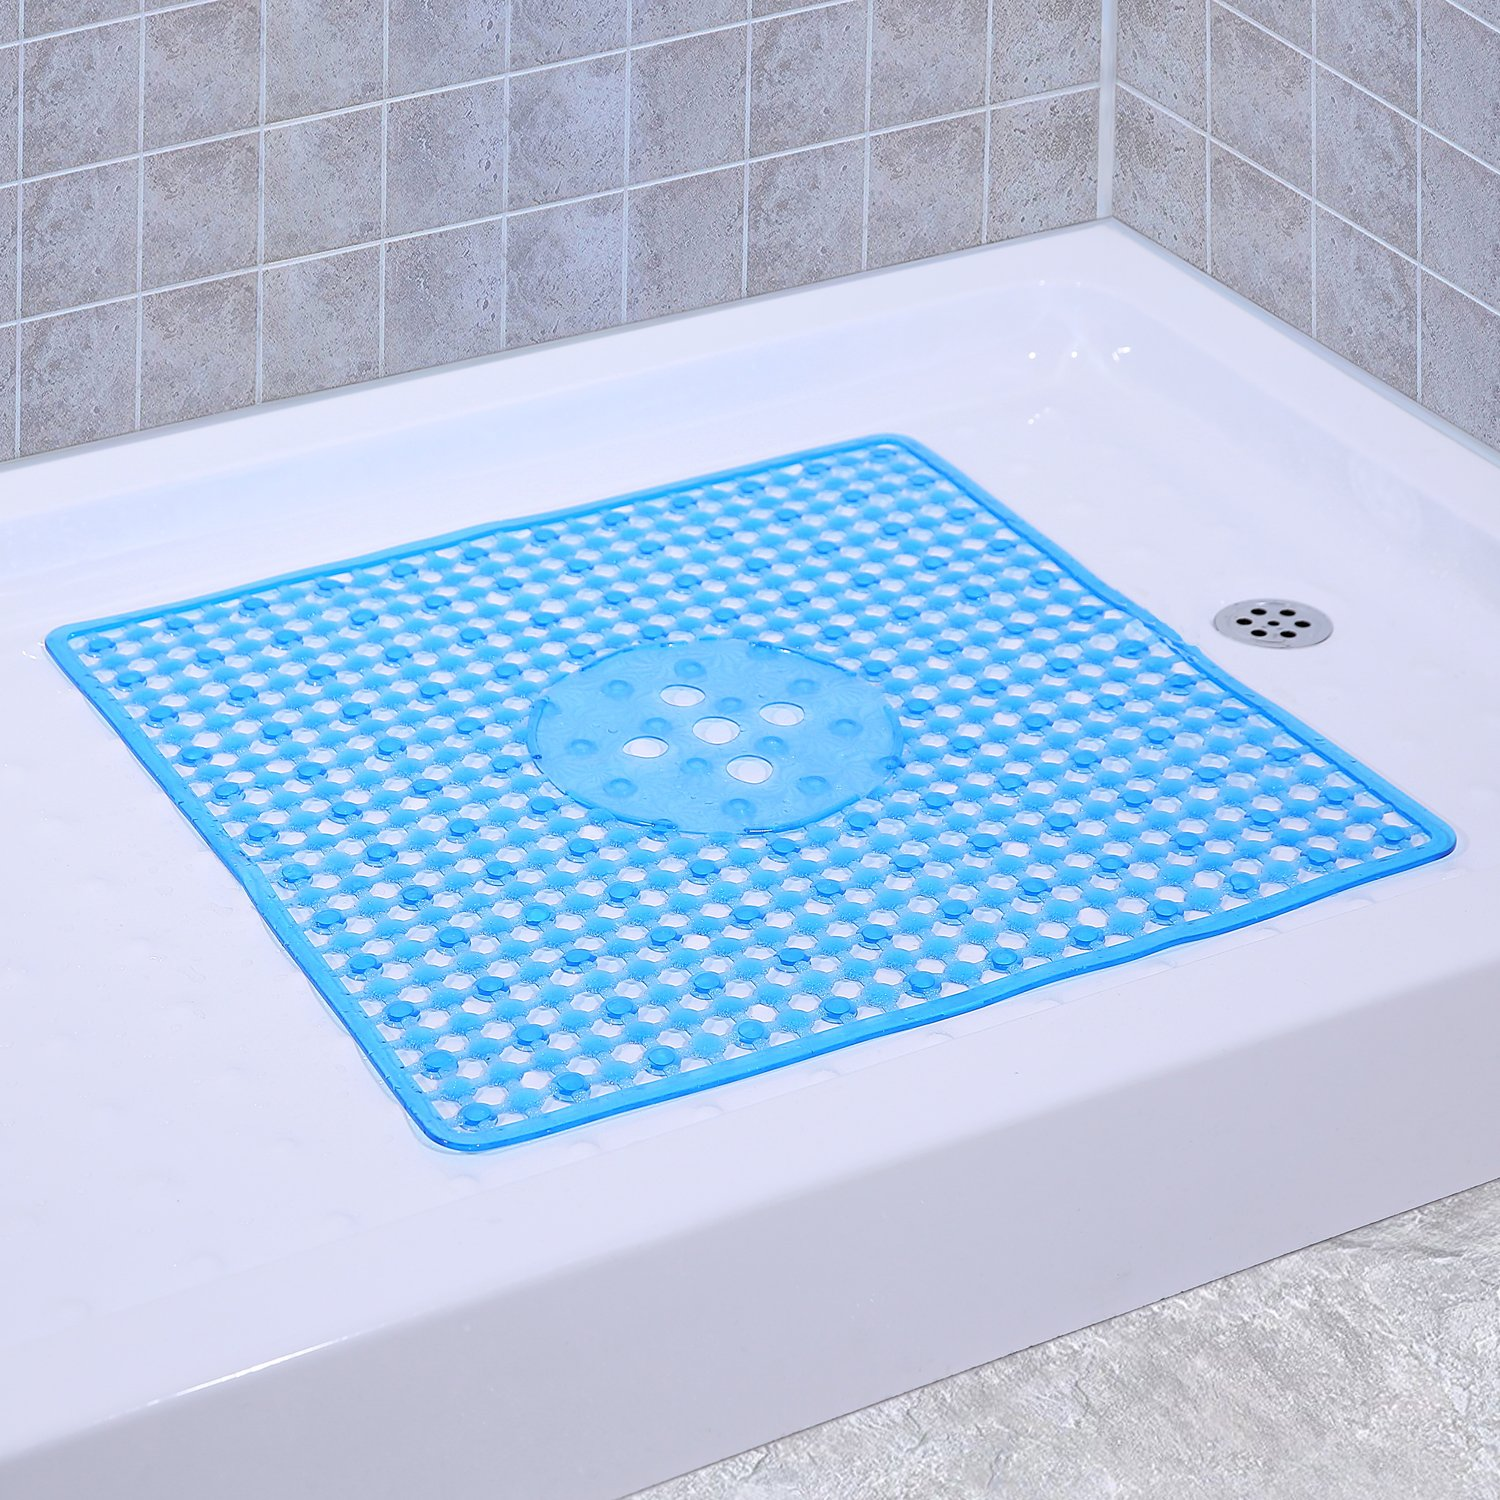 Non-Slip Shower Mats Square Bath Mat Anti Bacterial Machine Washable with Beauty Modern Design 22 x 22 Inch (Clear Blue)